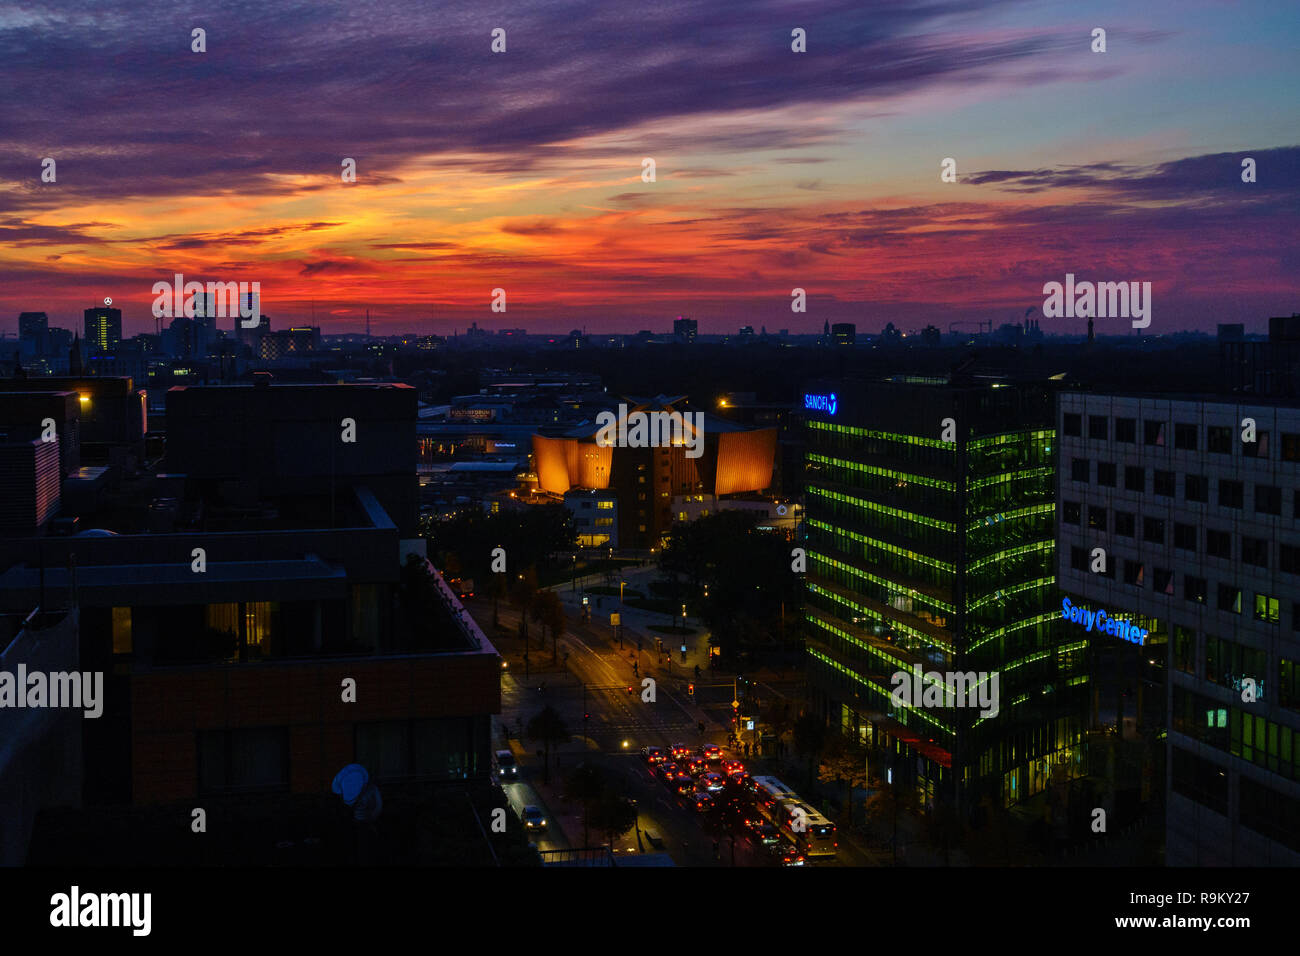 Spectacular sunset over the philharmonic orchestra hall in Berlin, Germany. Stock Photo